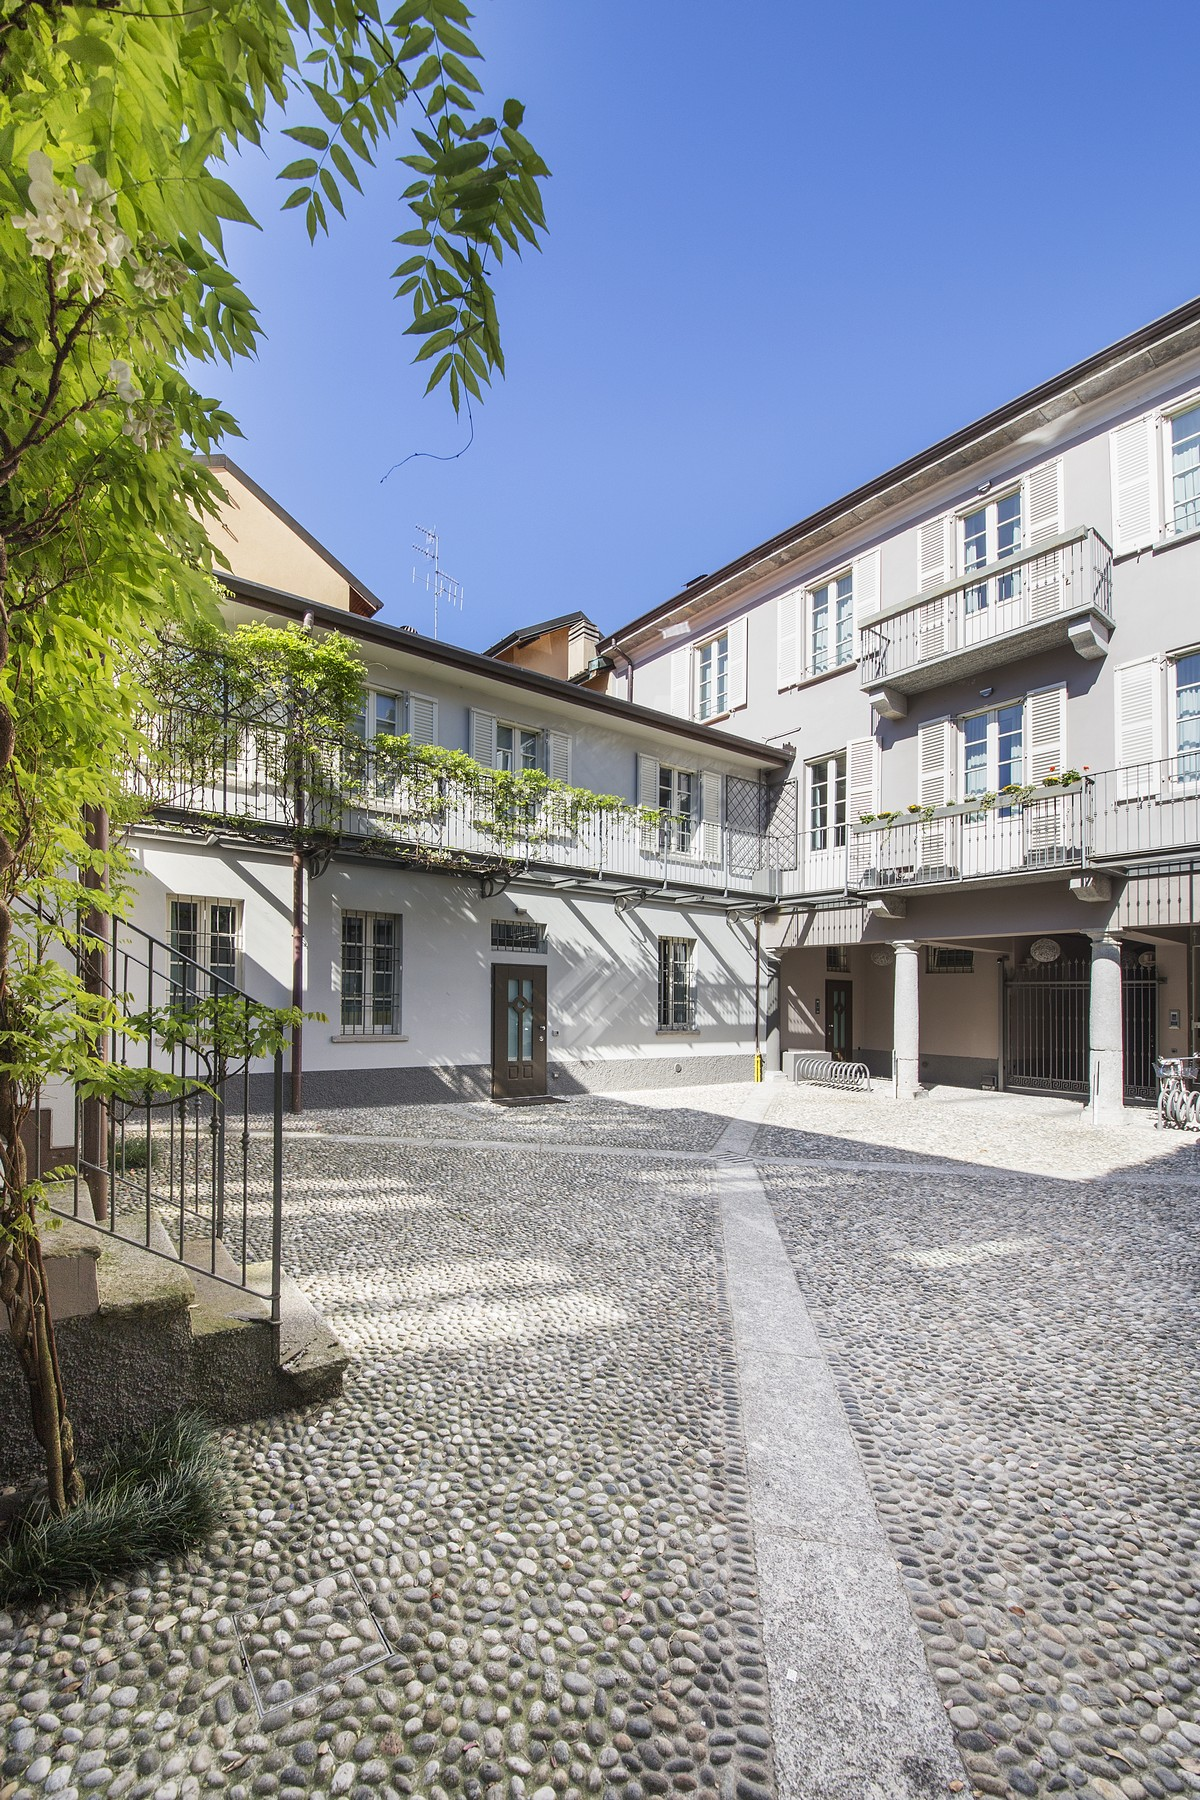 Single Family Home for Sale at Magnificent property in one of the most valuable areas of the historical center Via Giovio Como, Como 22100 Italy